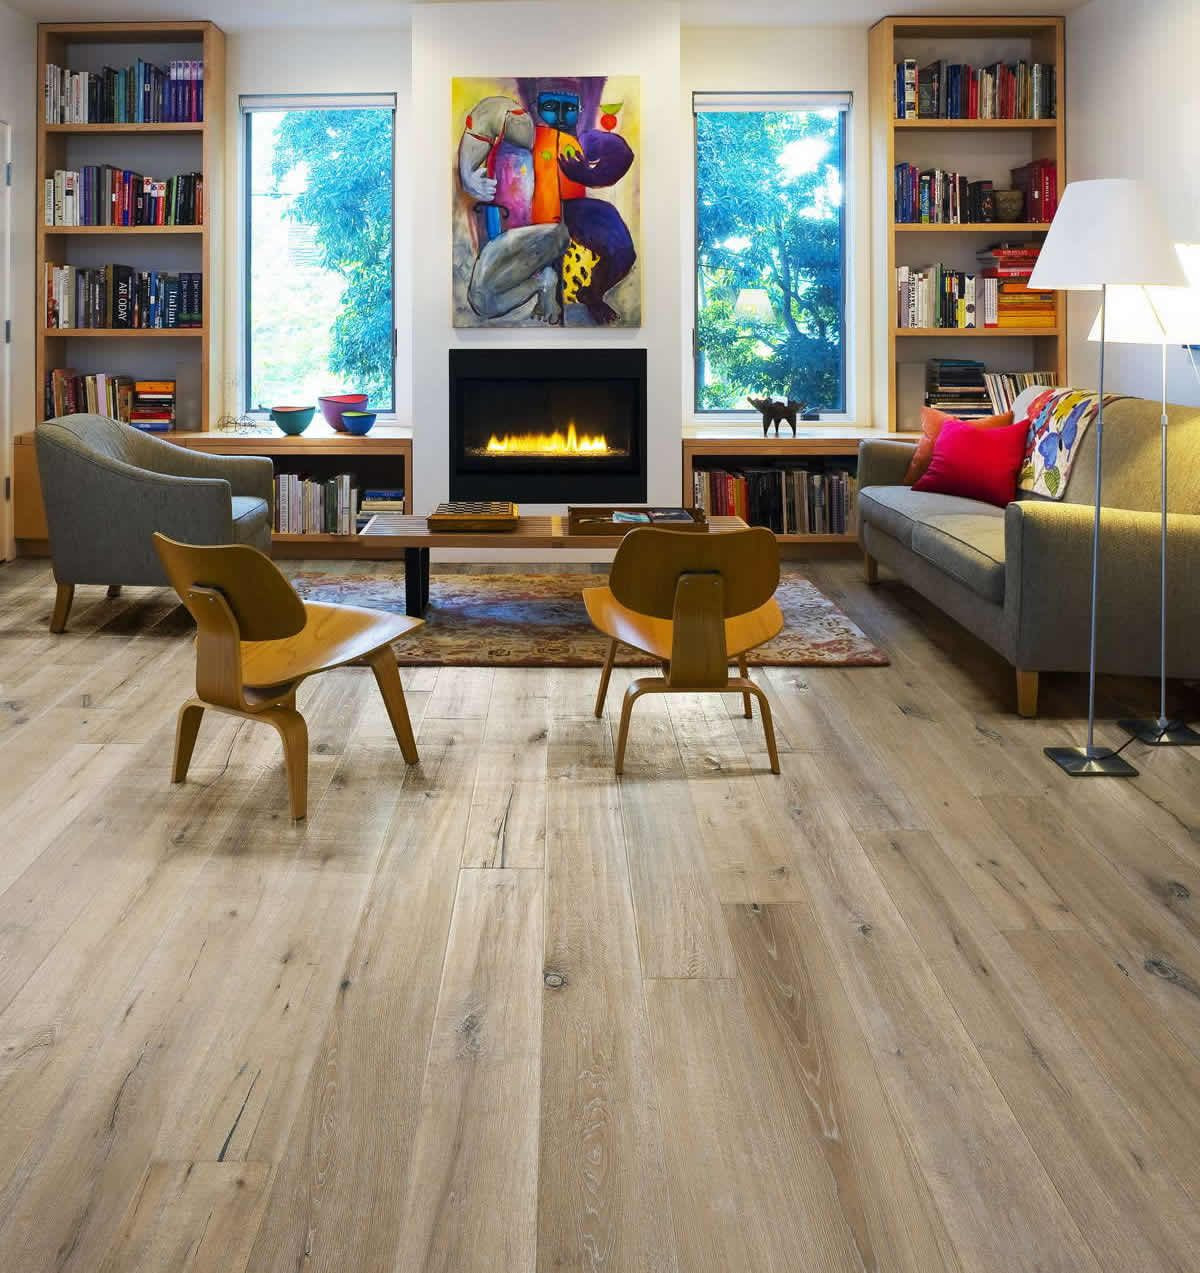 Hardwood Floor Refinishing Kansas City Of Kahrs Artisan Oak Linen Engineered Wood Flooring Pinterest with Bring Light and Life Into Your Home with the Beautiful Kahrs Artisan Oak Linen Engineered Wood Flooring From Flooringsupplies Co Uk